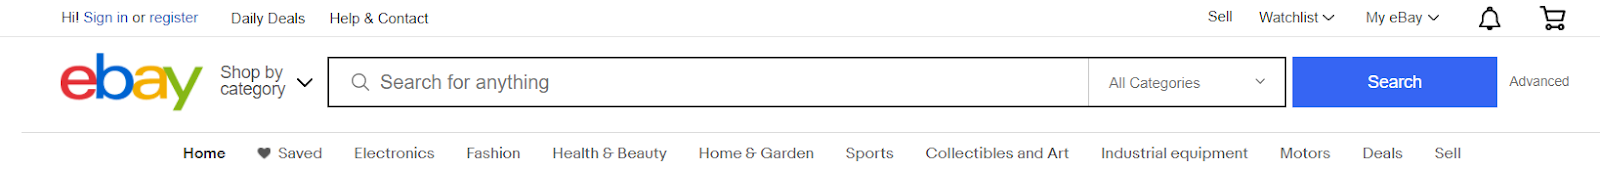 Screenshot of Ebay - Product Listing Search Engine